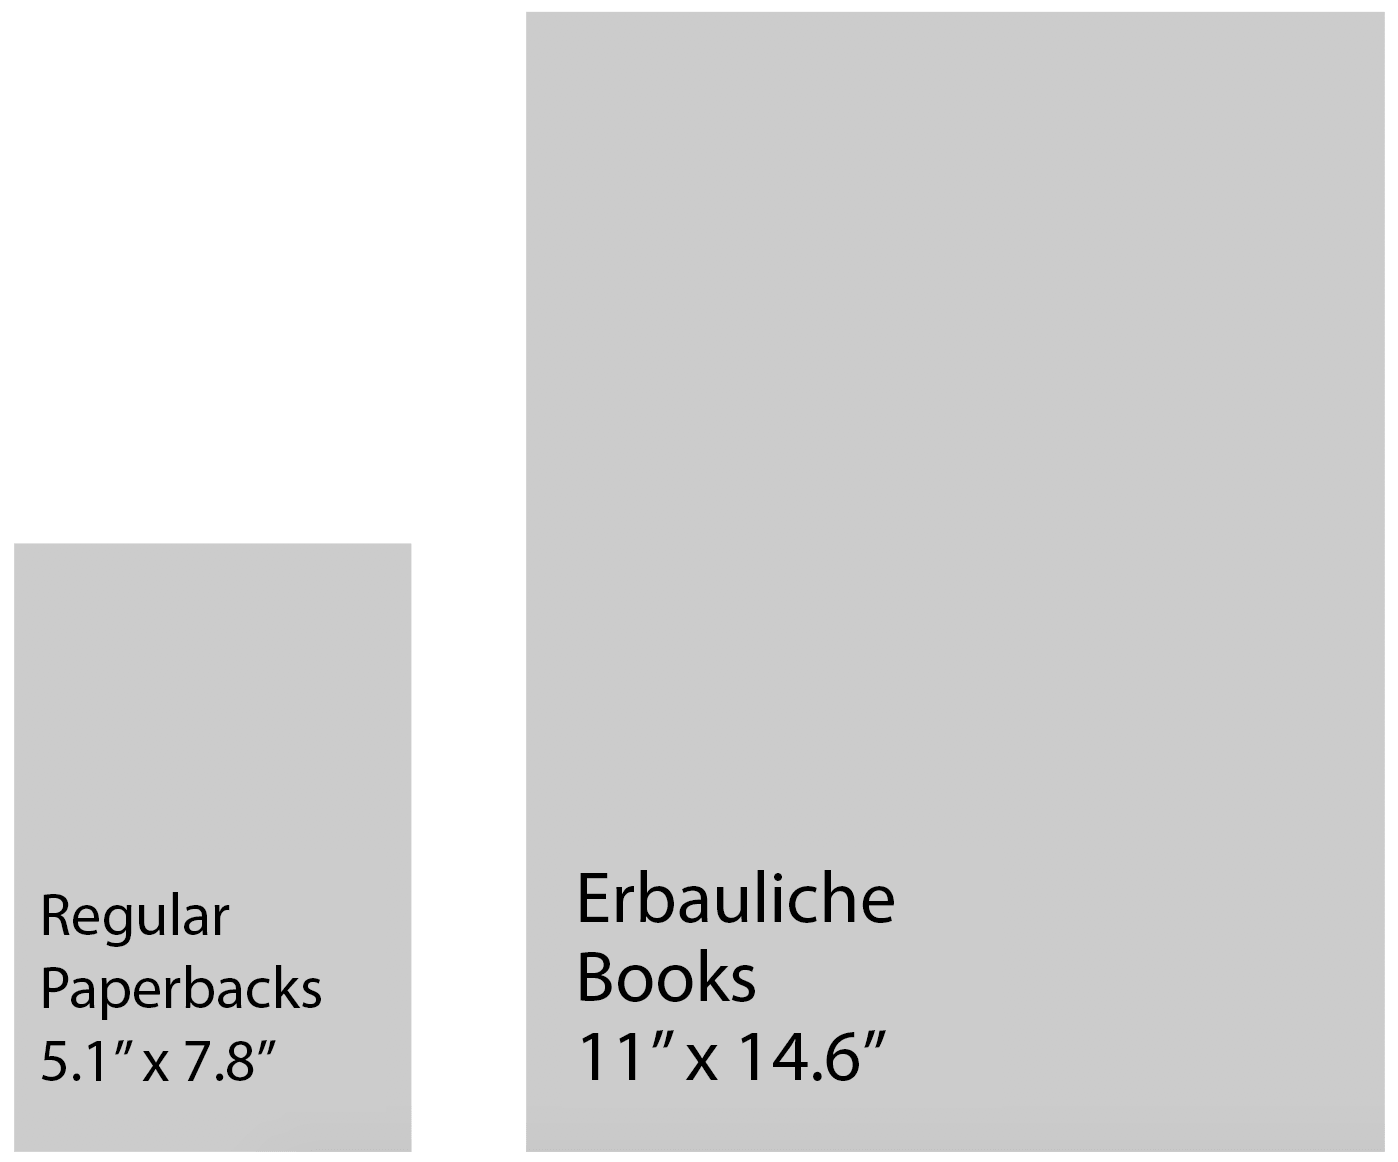 Erbauliche Book Comparison